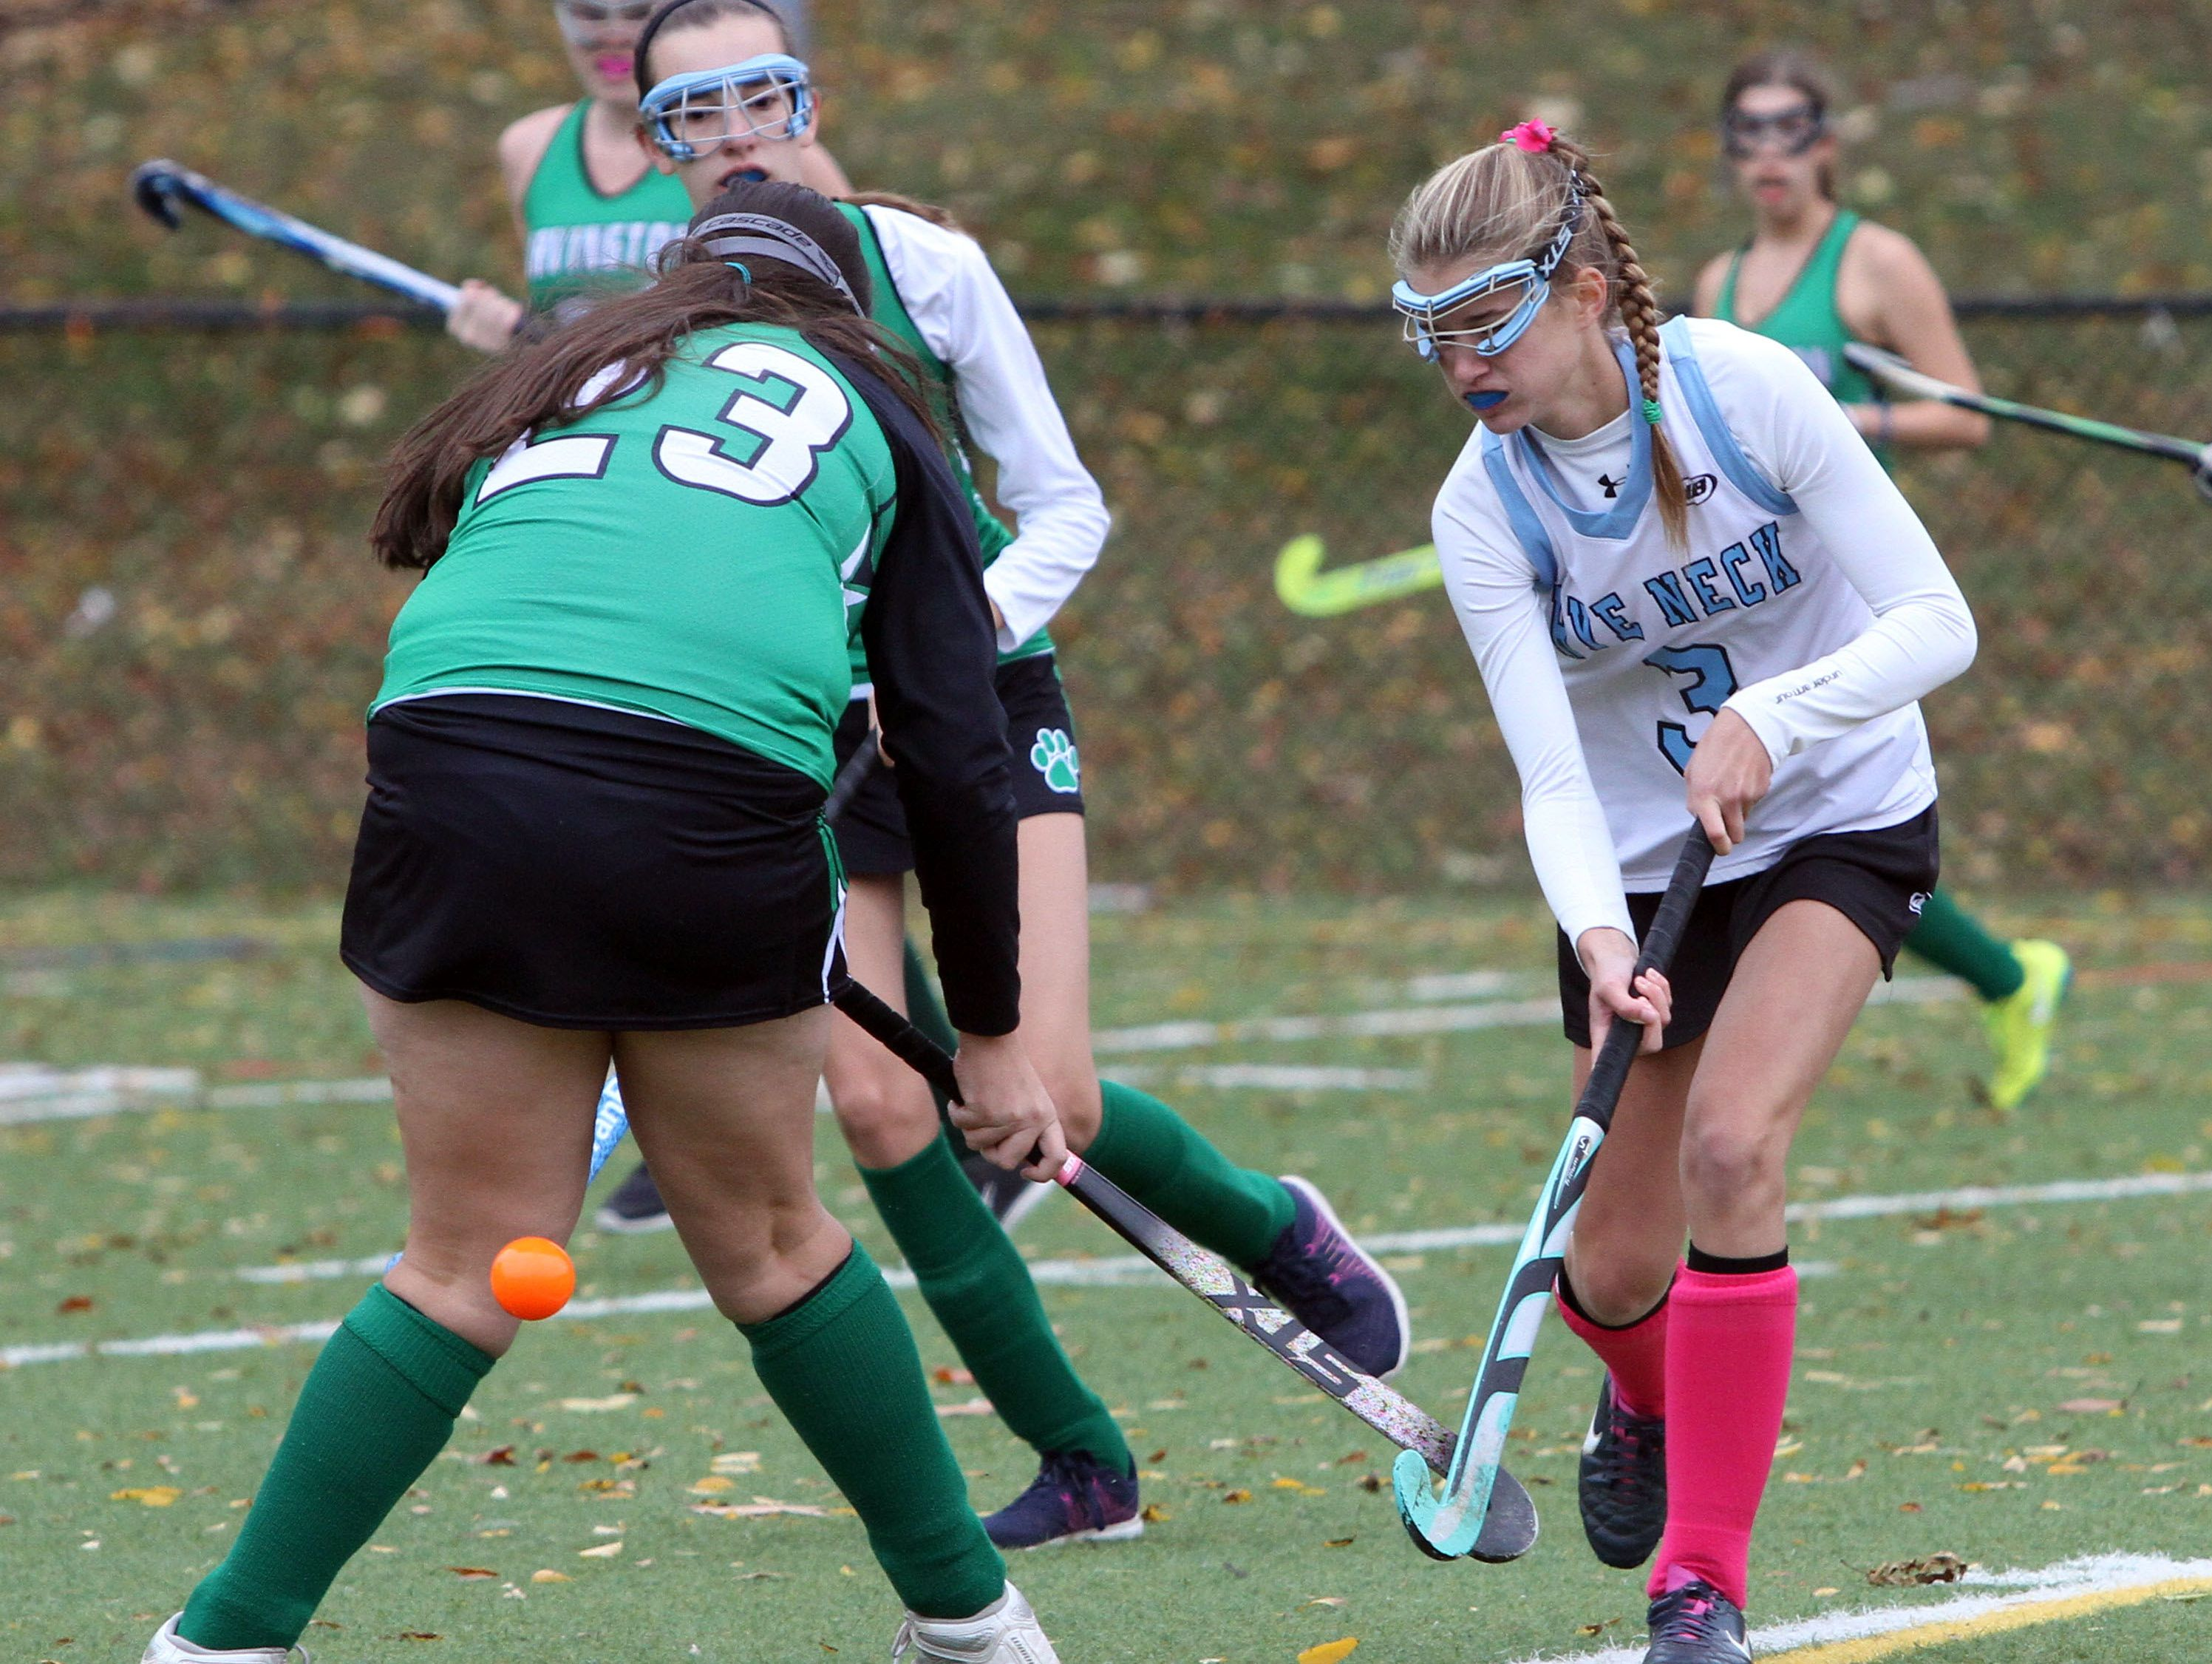 Rye Neck's Emilie Cohen tries to get to the ball behind Irvington's Nicole Sklitsis during their field hockey game at Mamaroneck High School, Oct. 22, 2016.